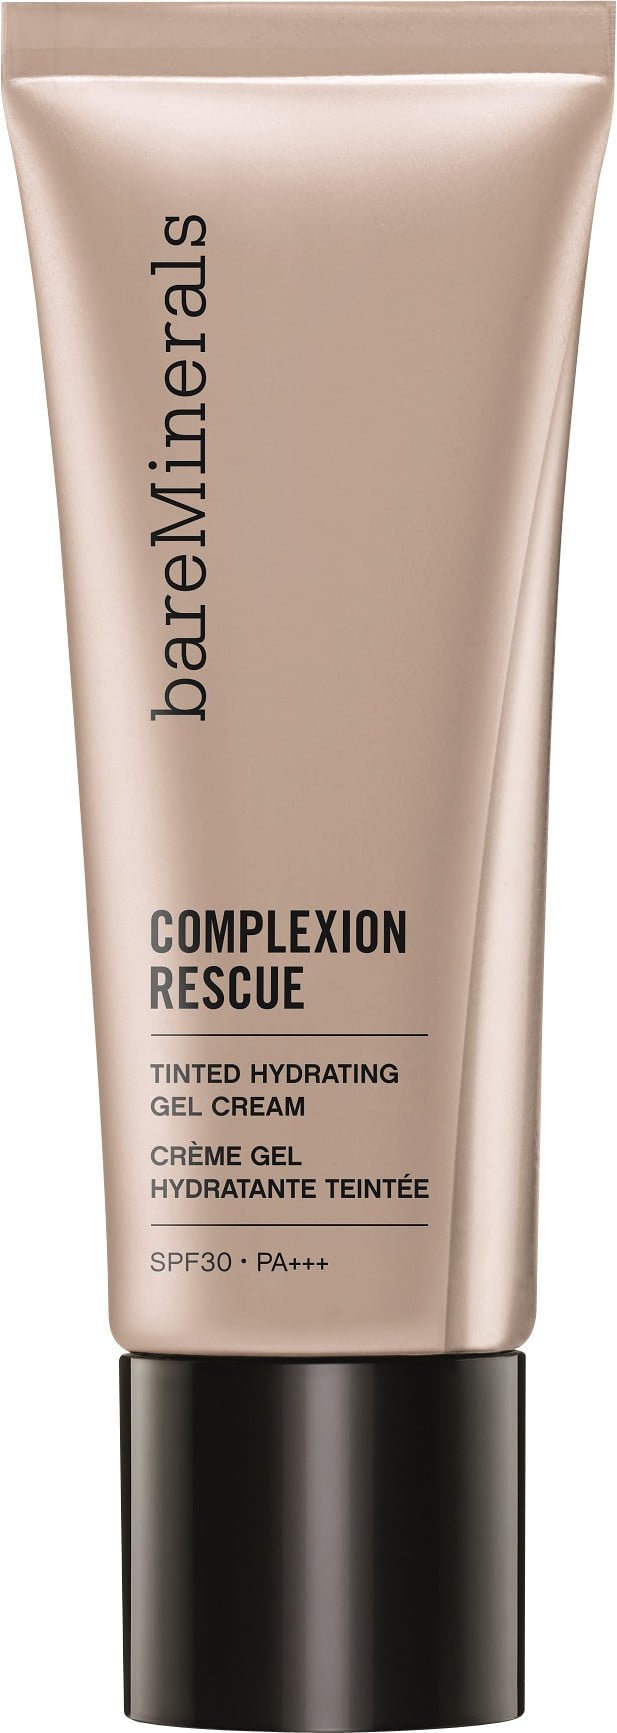 bareMinerals Complexion Rescue Hydrating Tinted Cream Gel SPF30 35ml 07 - Tan